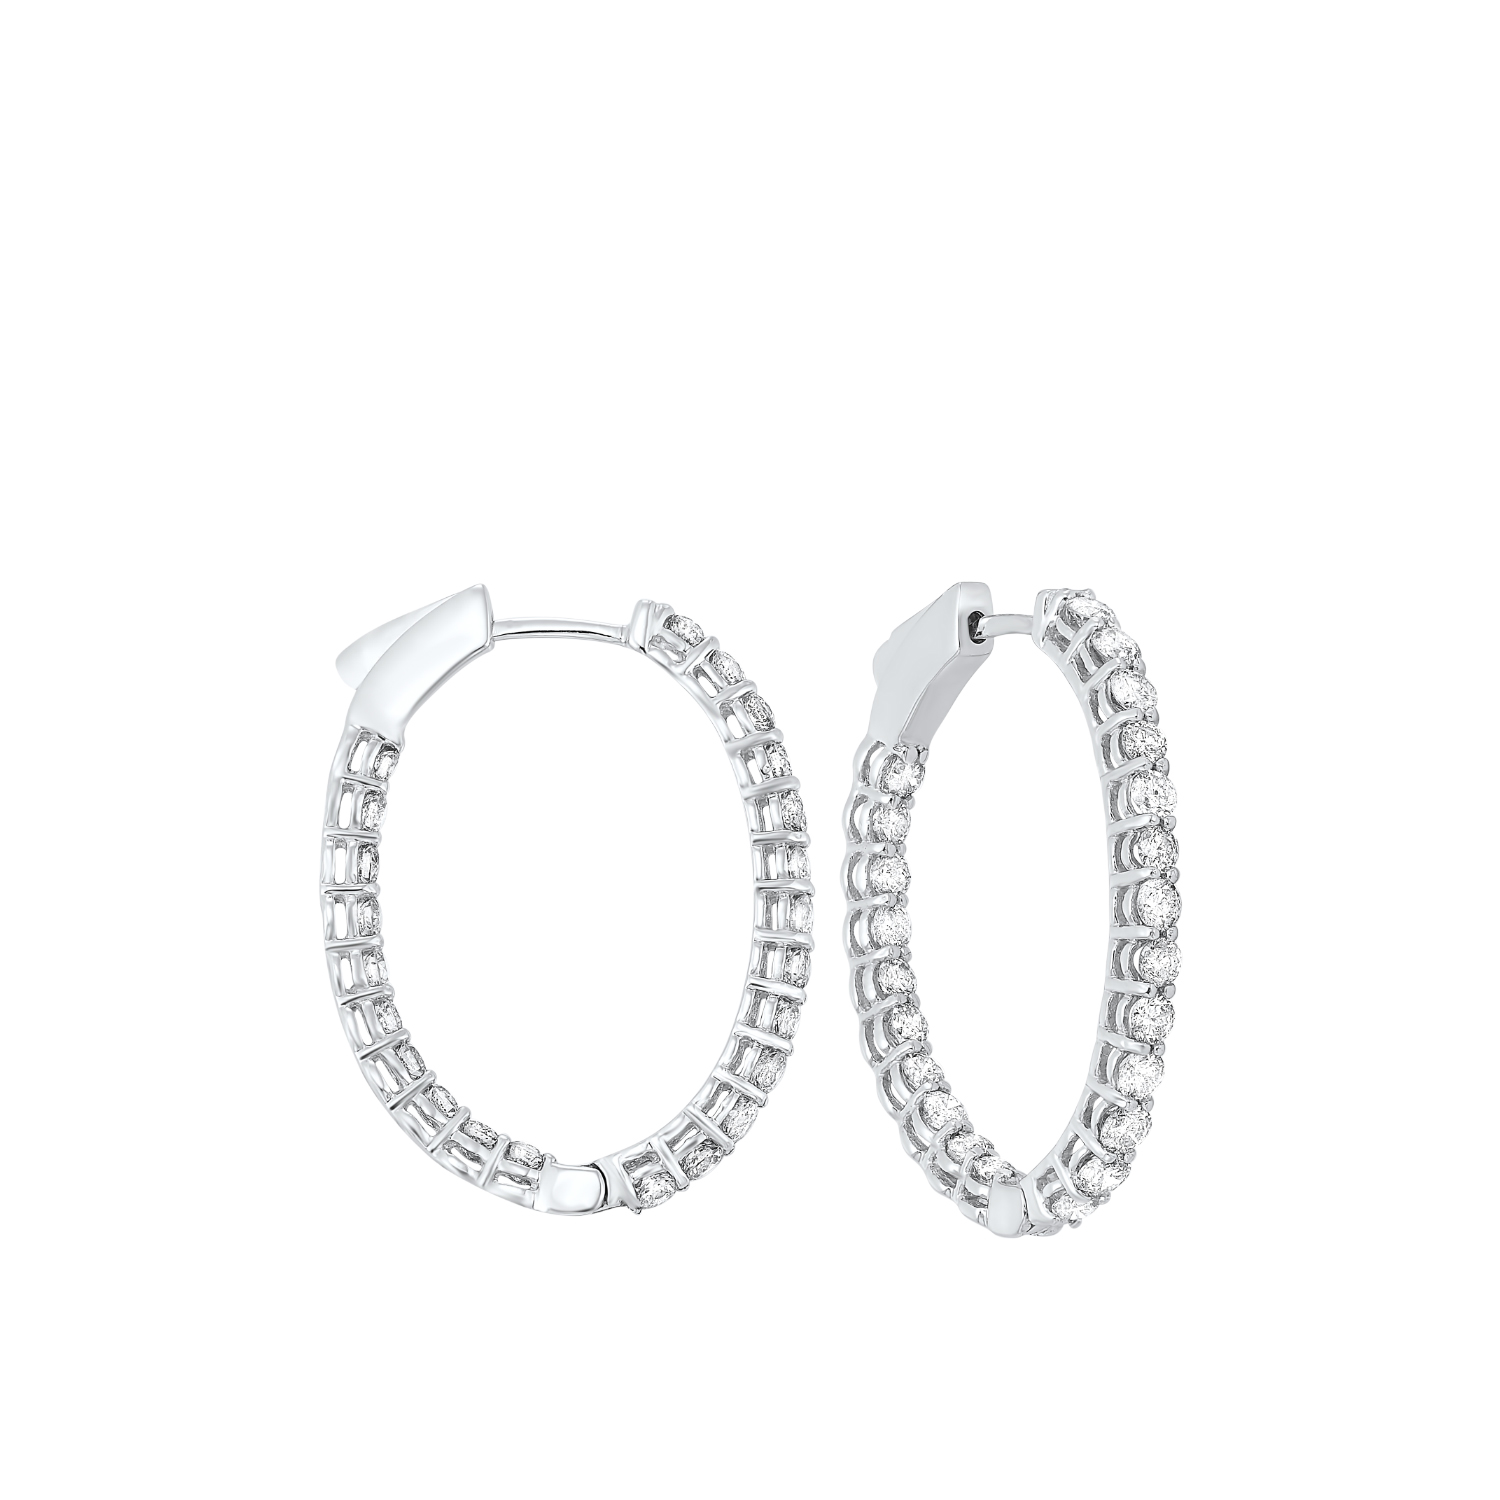 In-Out Diamond Hoop Earrings in 14K White Gold (2 ct. tw.) I2/I3 - H/K - Our beautiful  In-Out Diamond Hoop Earrings in 14K White Gold (2 ct. tw.)  is the perfect jewelry choice for you or your loved one. We have engagement rings, wedding bands, earrings, and so much more.